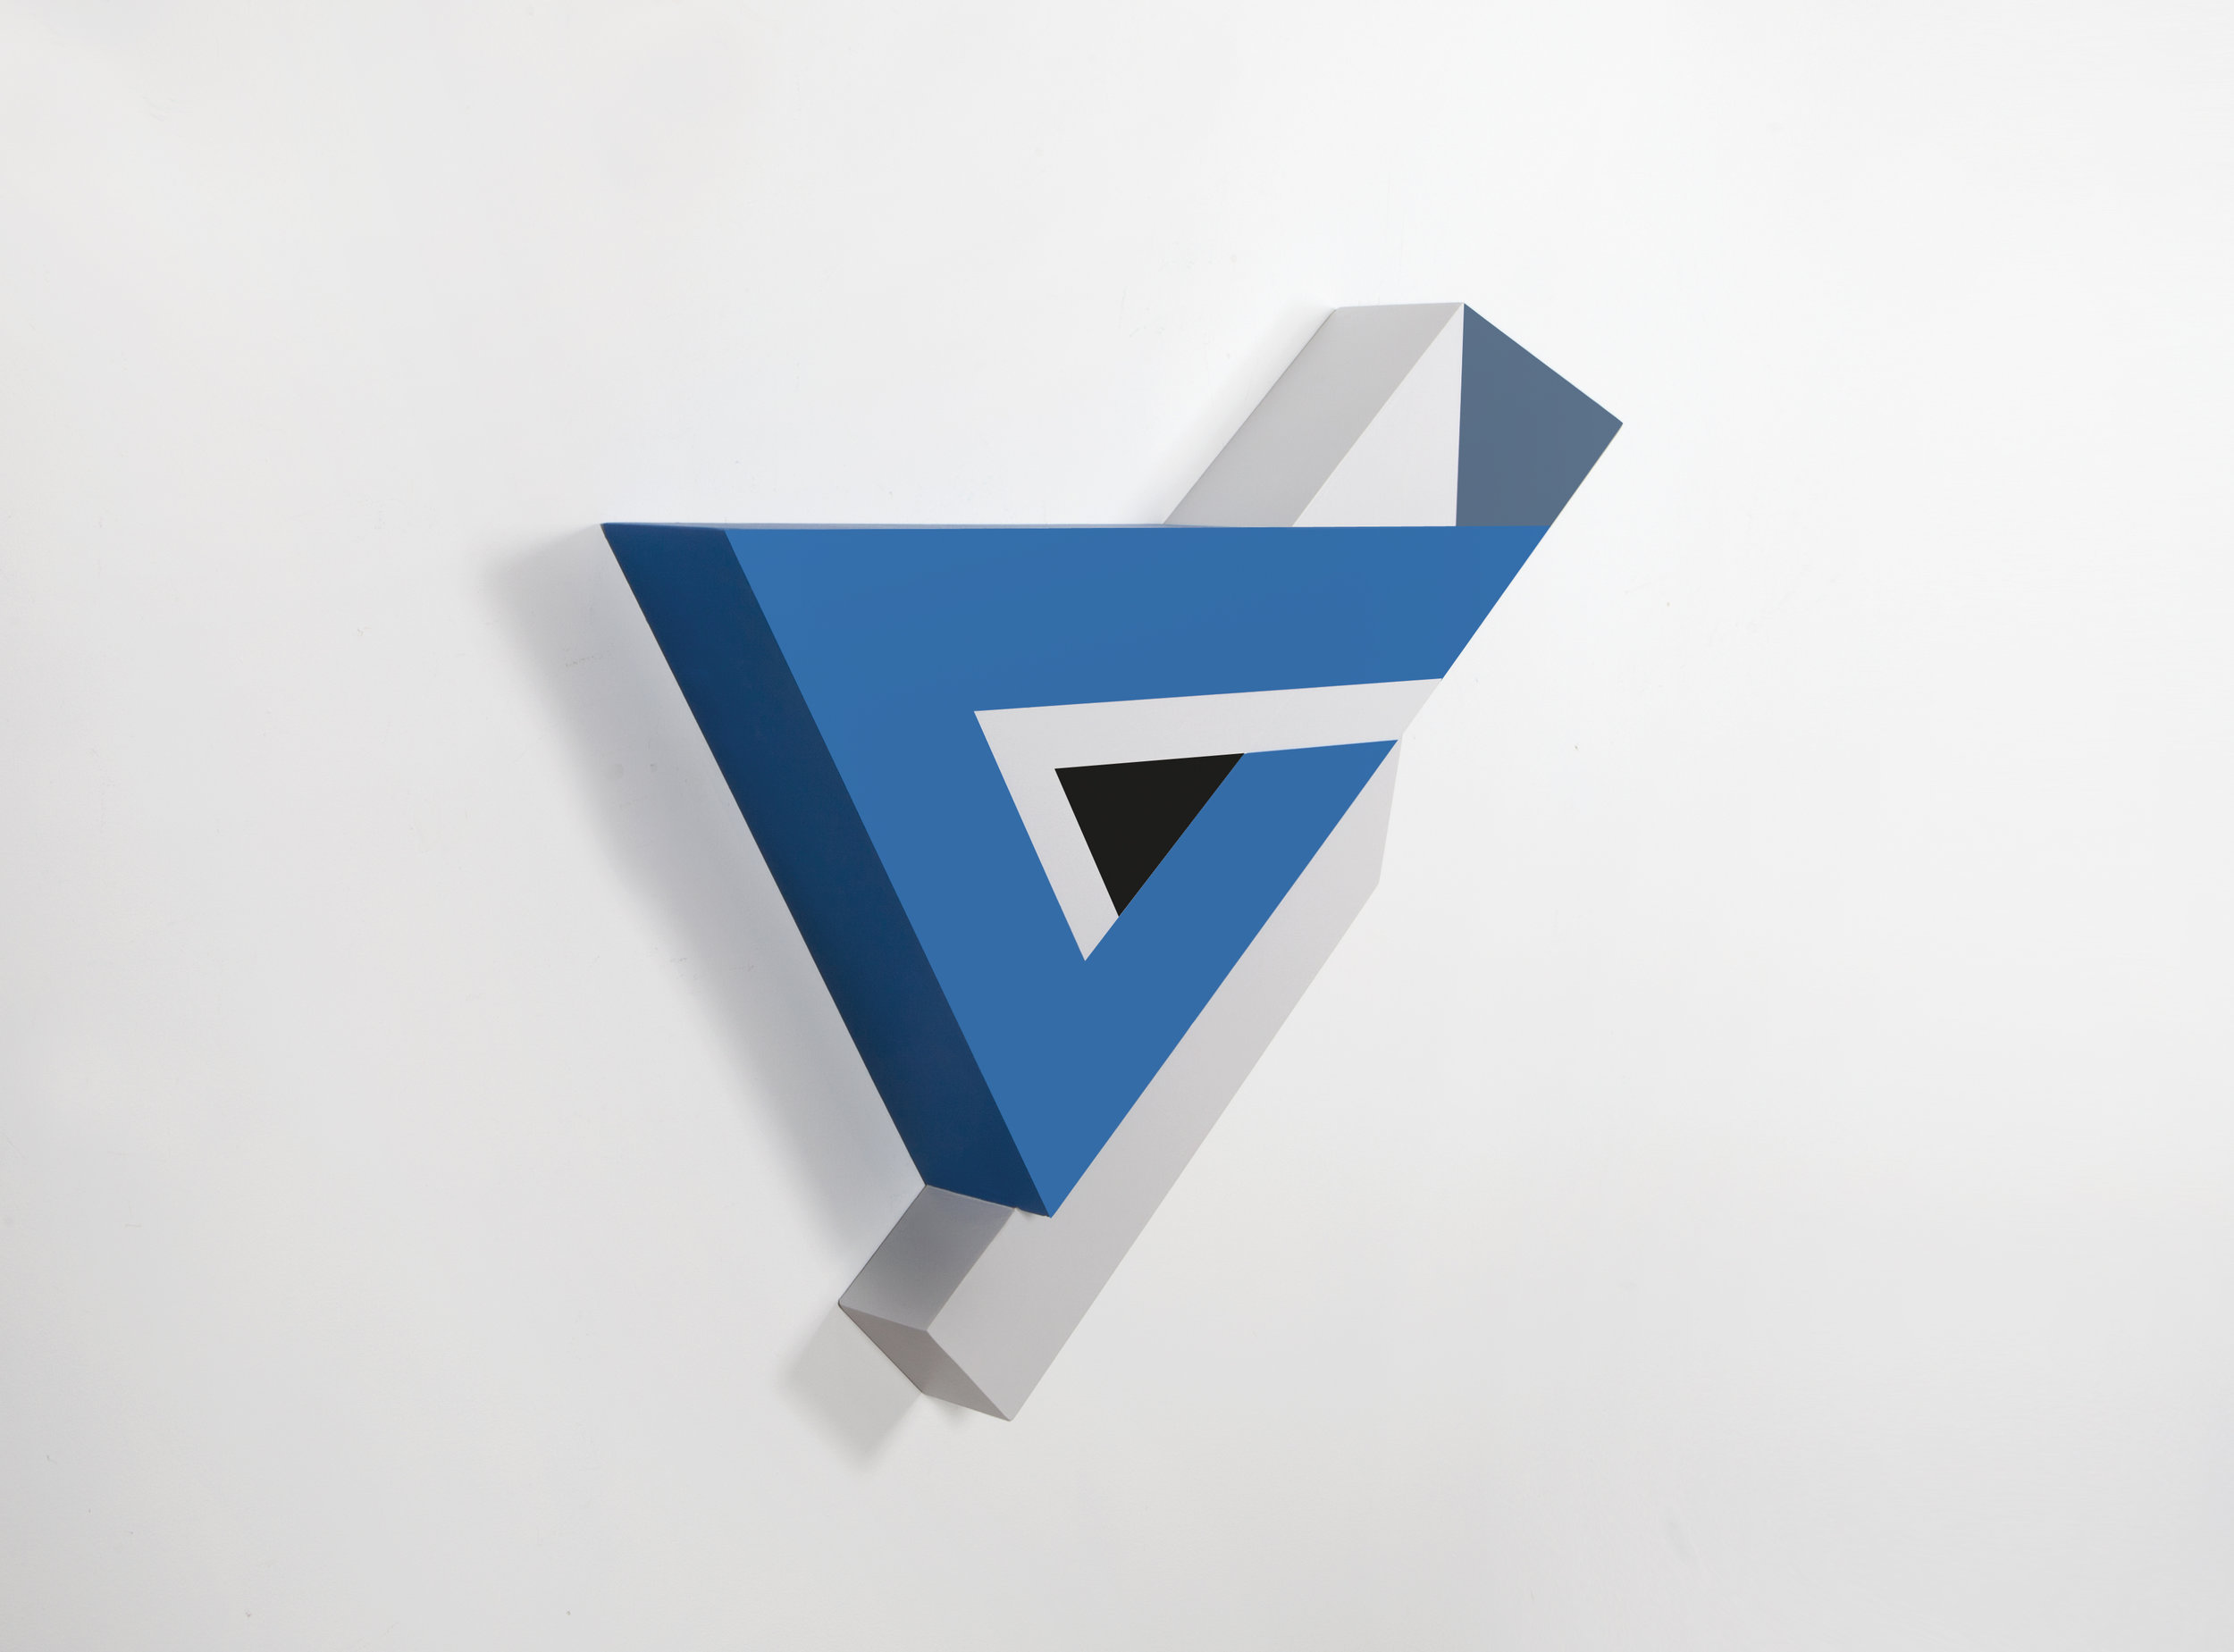 Zin Helena Song   Polygon in space #26   2015   Mixed Media on Wood   27 x 30 x 3.5 in.